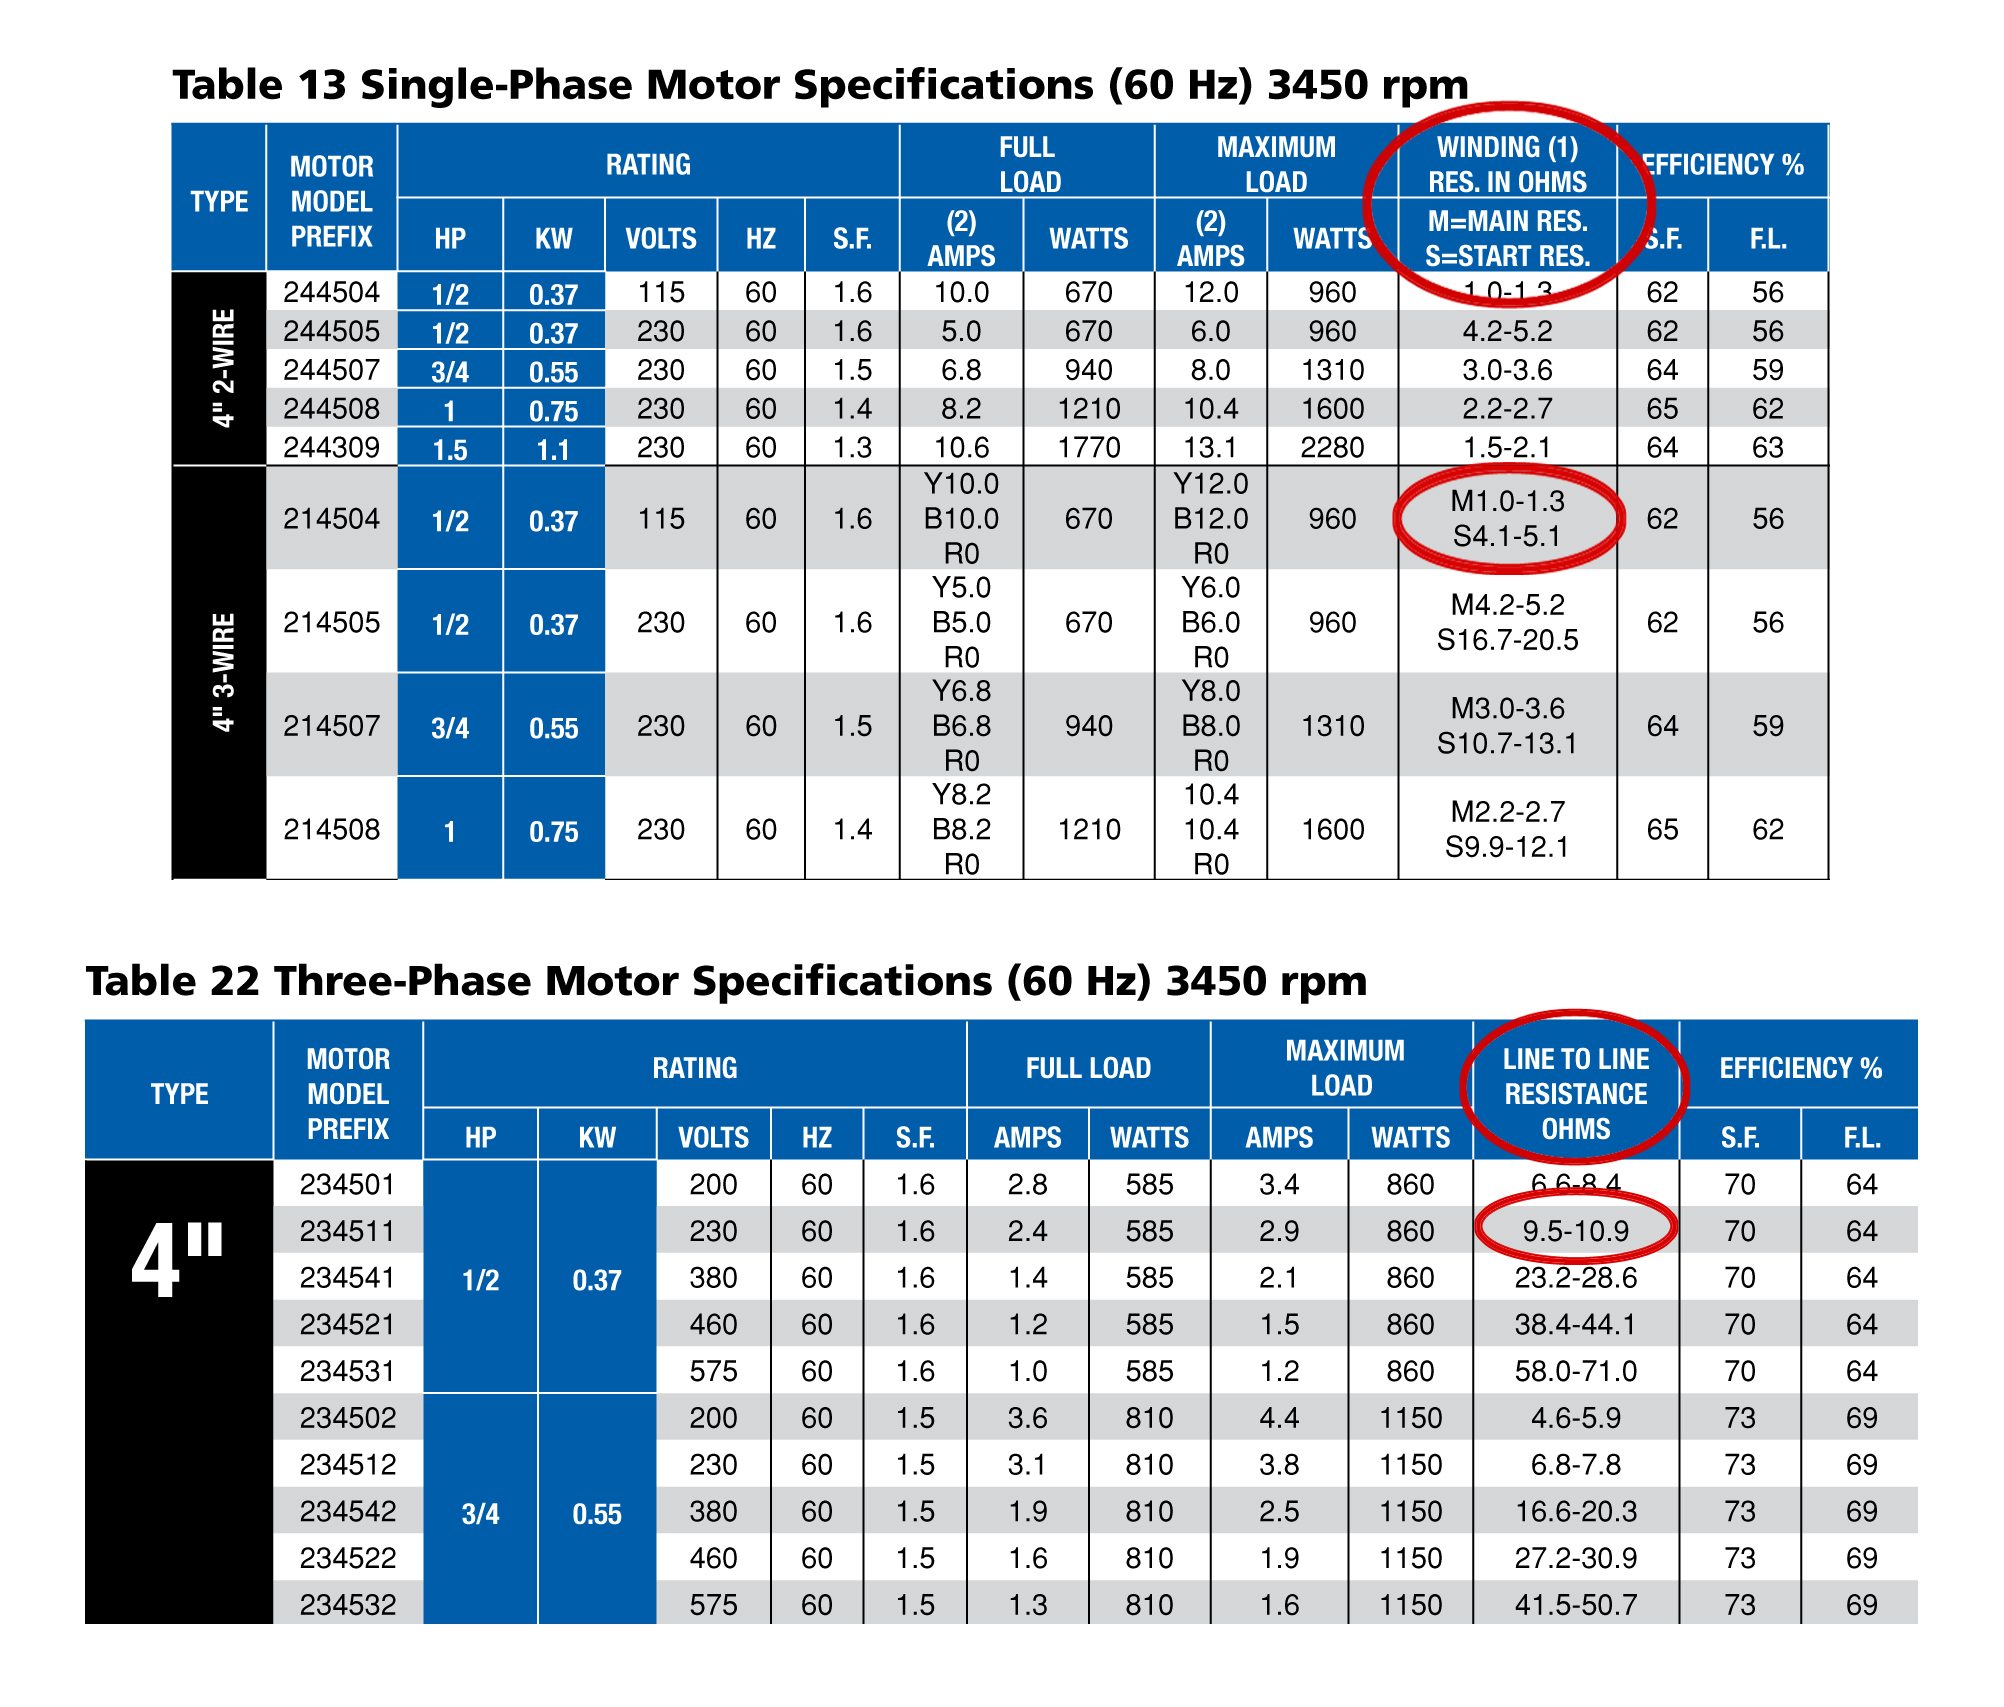 Another difference between single- and three-phase motors ...